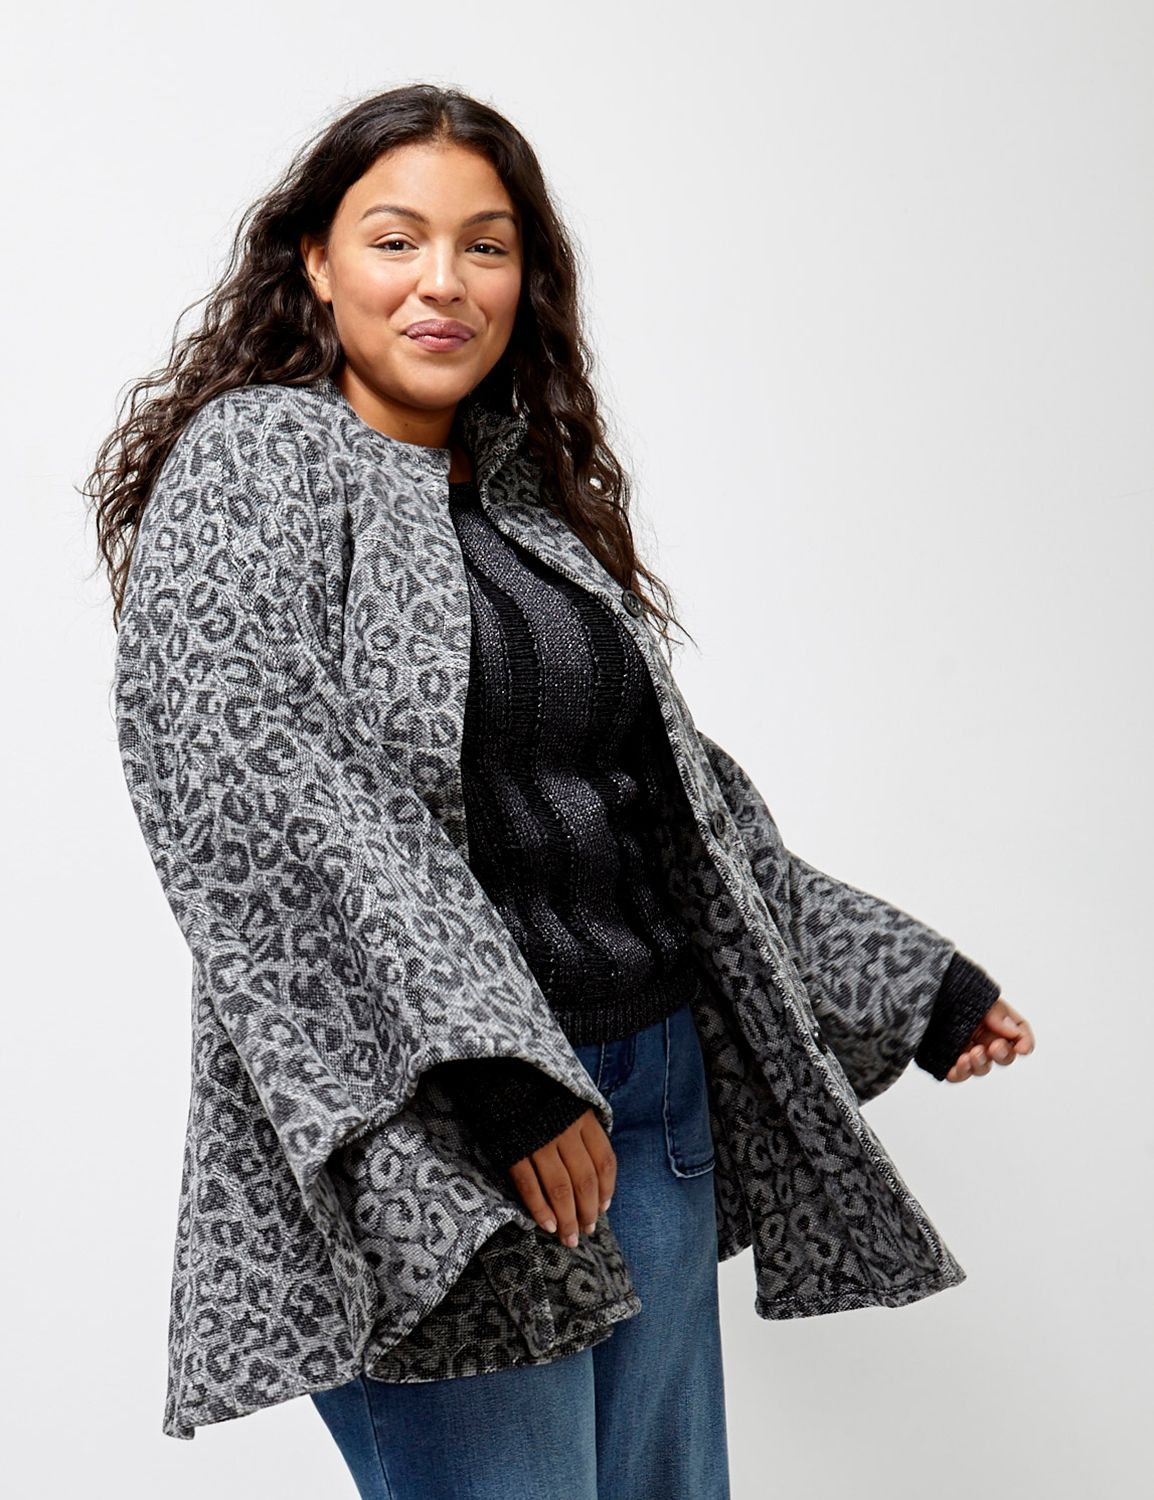 6th Lane Animal Print Cape Original Price 129 90 Available At Maurices Plus Size Winter Jackets Plus Size Outerwear Cheetah Print Dress [ 1500 x 1154 Pixel ]